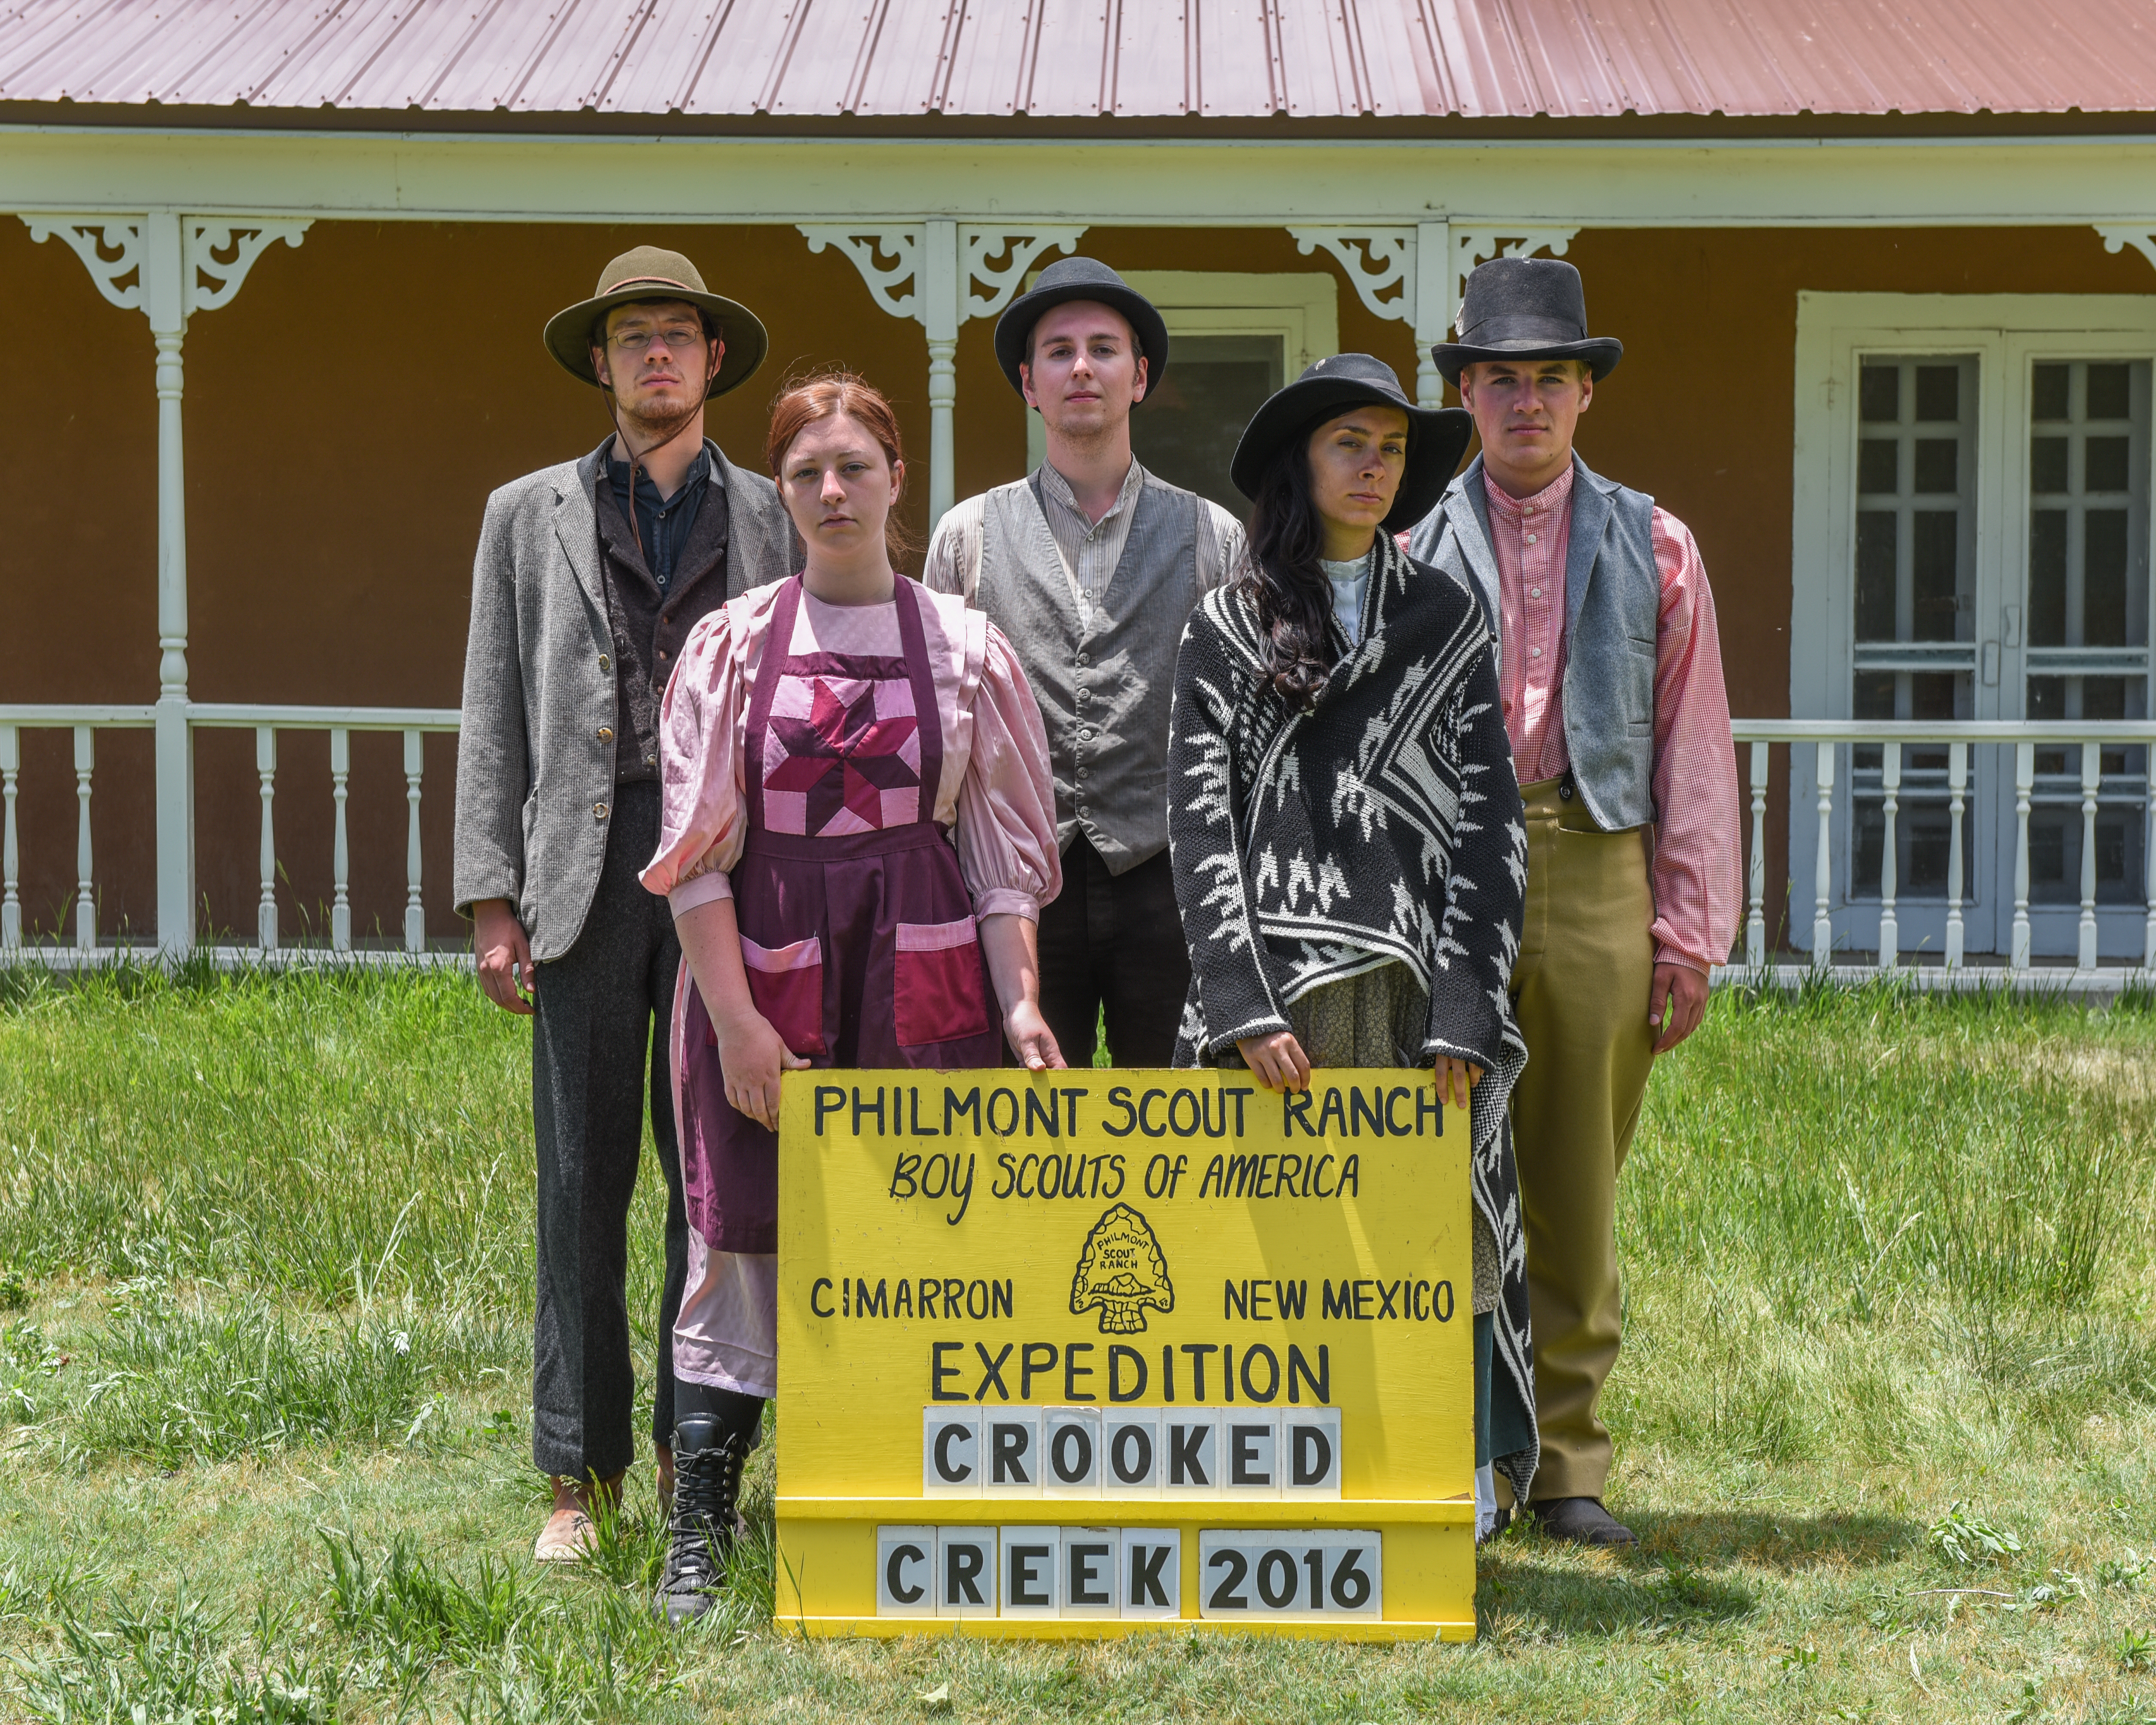 Summer at the Philmont Scout Ranch: Luke Steffen, OWU 2016